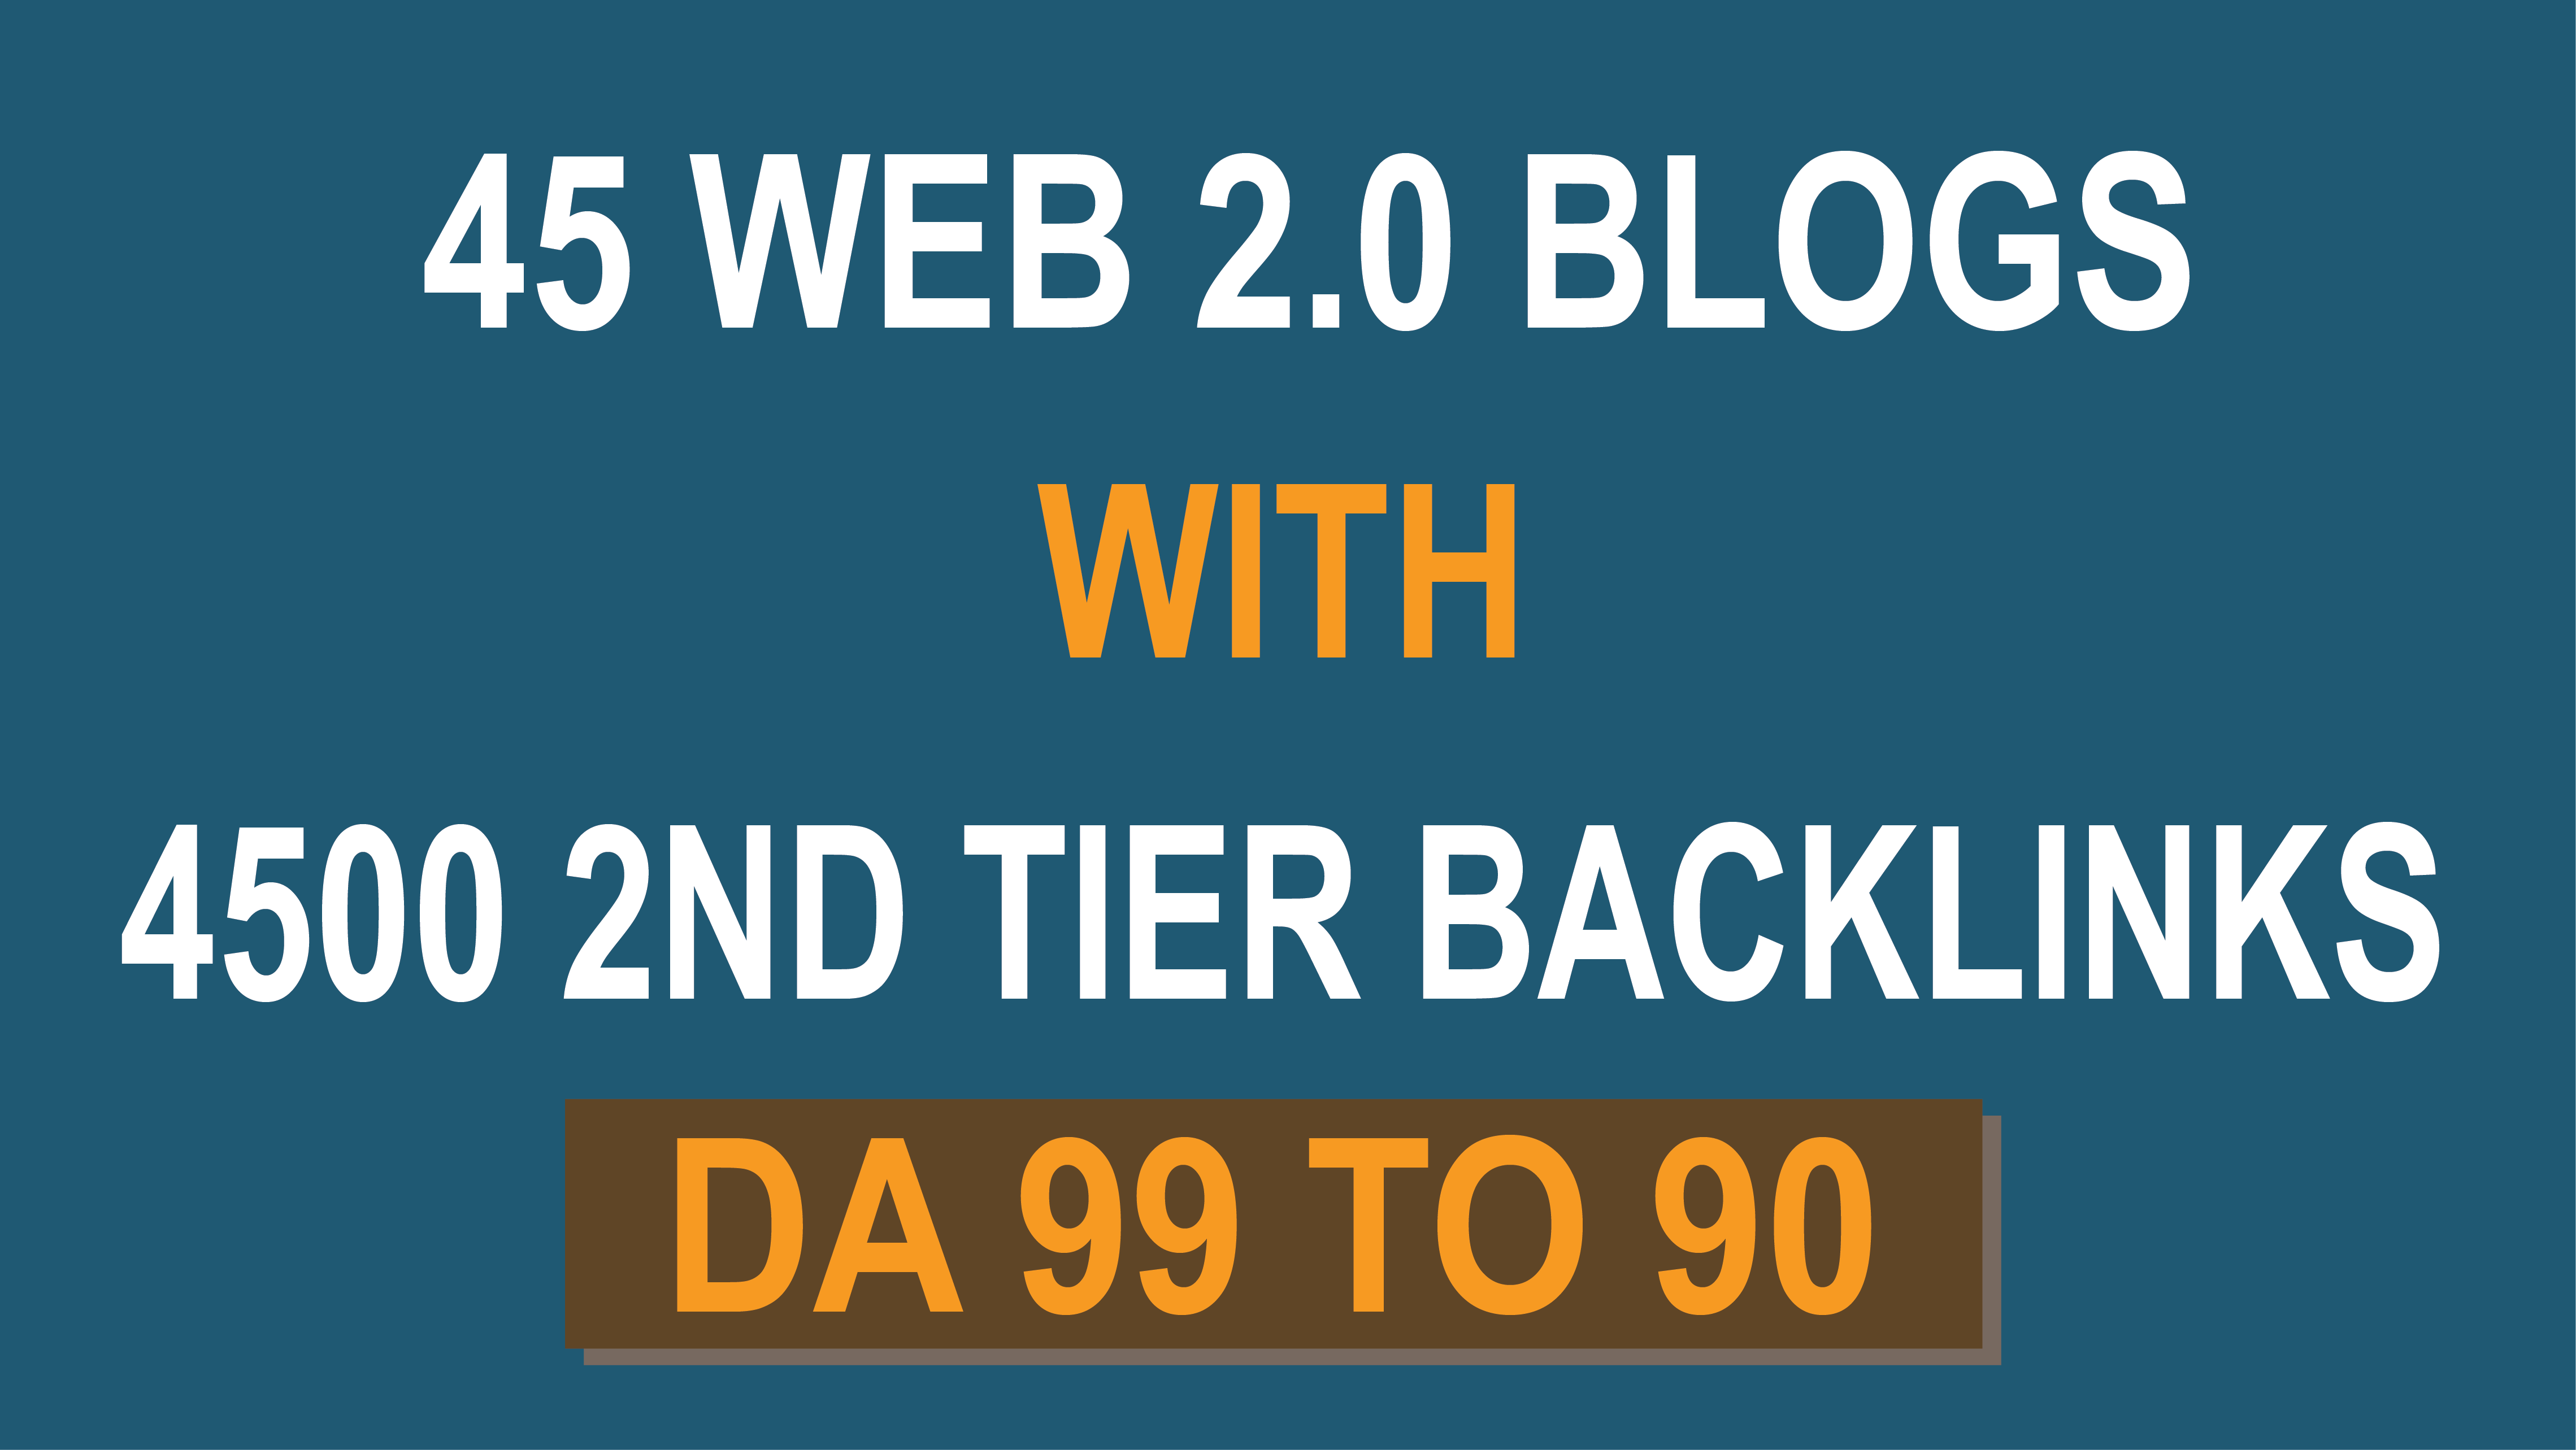 Powerful 45 Web 2.0 Blogs With 4500 2nd Tier Backlinks DA 99 to 90